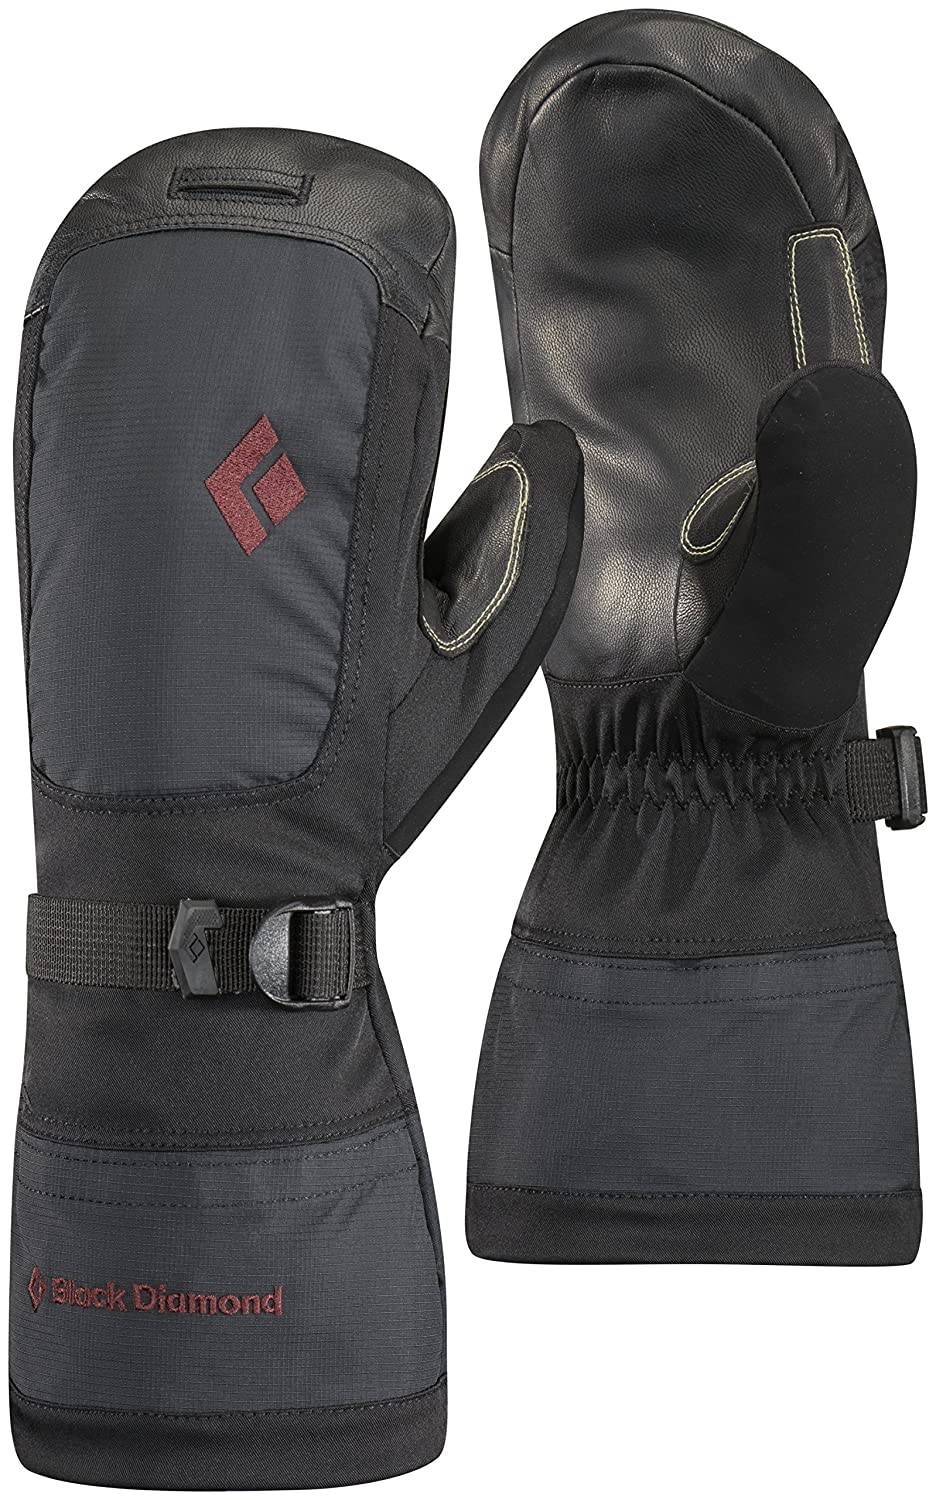 Black Diamond Women's Mercury Mitts Black Diamond Equipment LTD